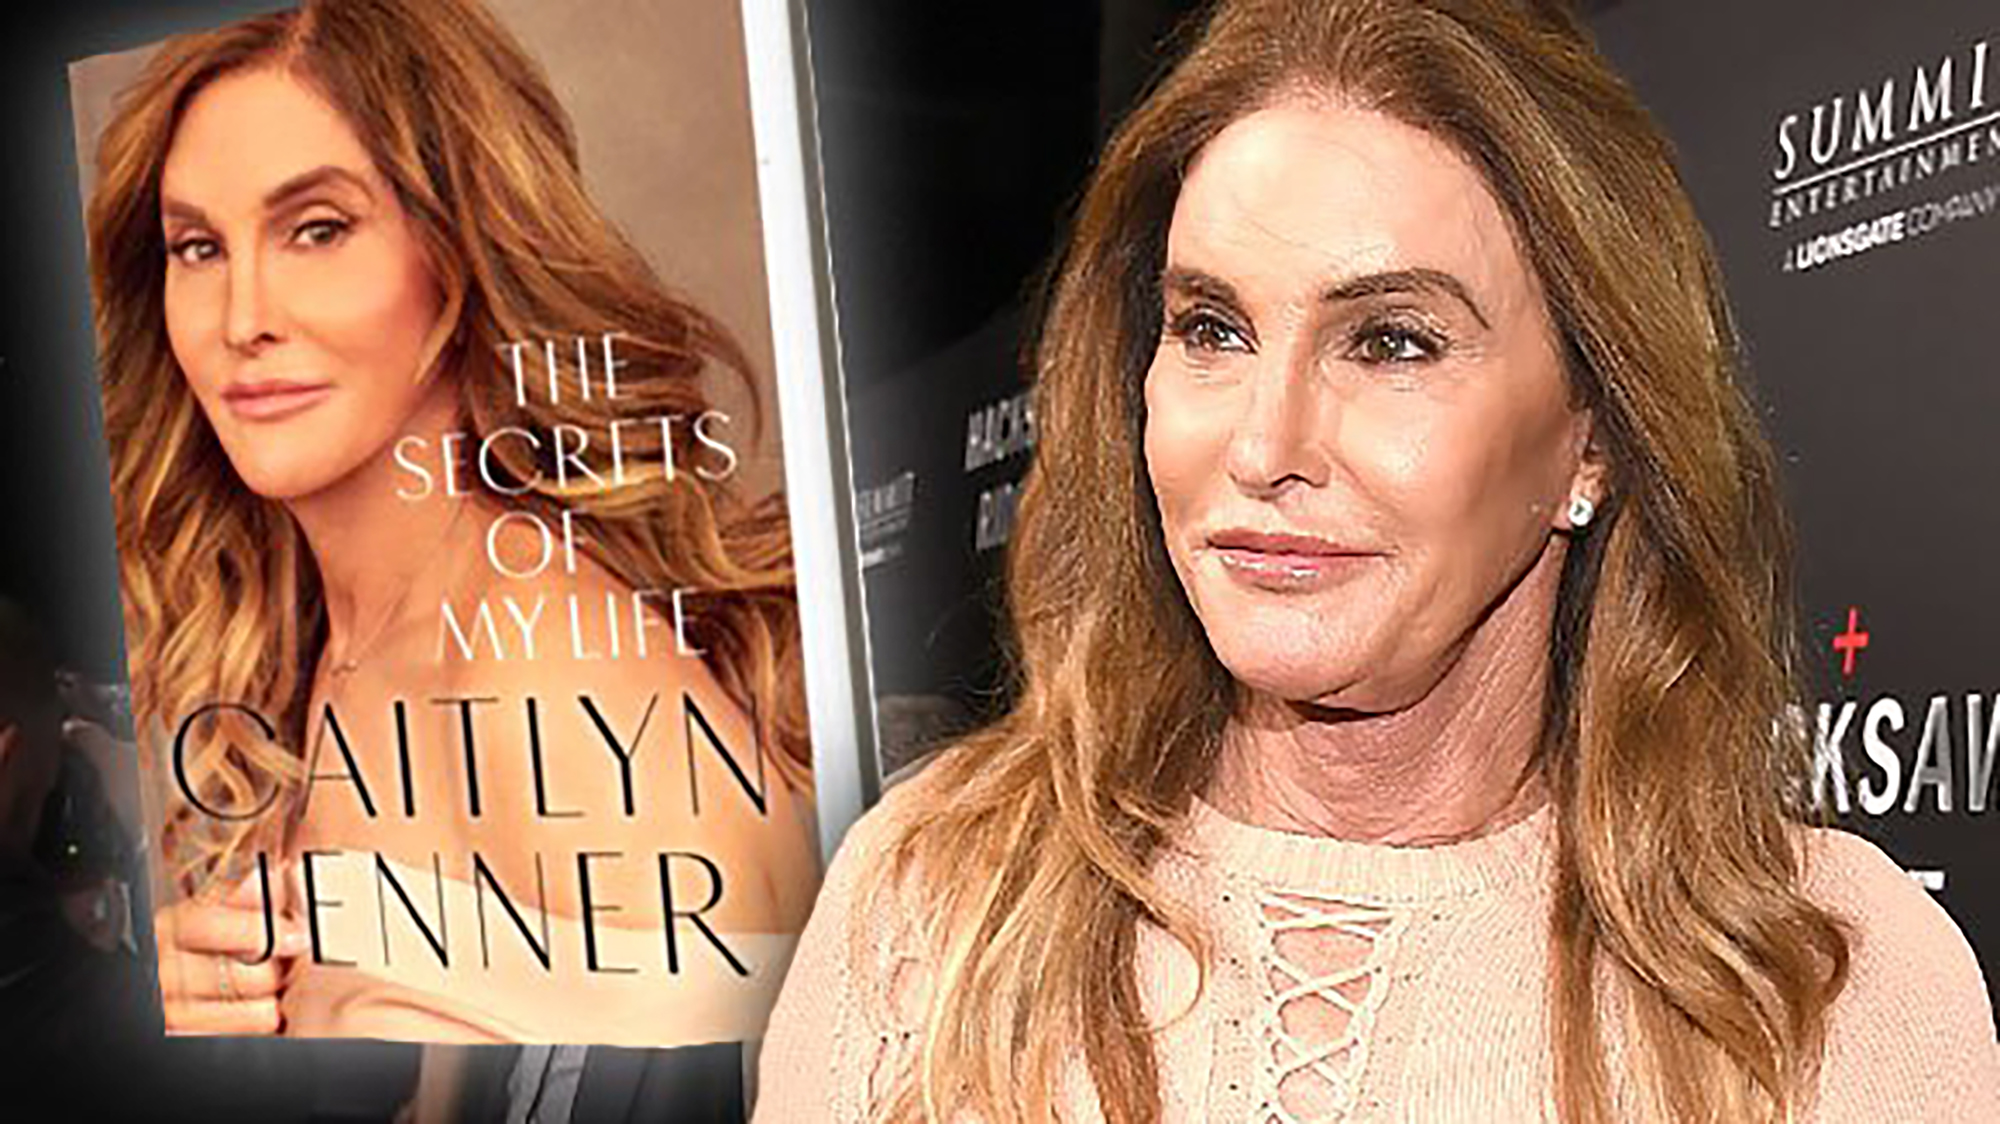 Caitlyn Jenner: The Secrets of My Life